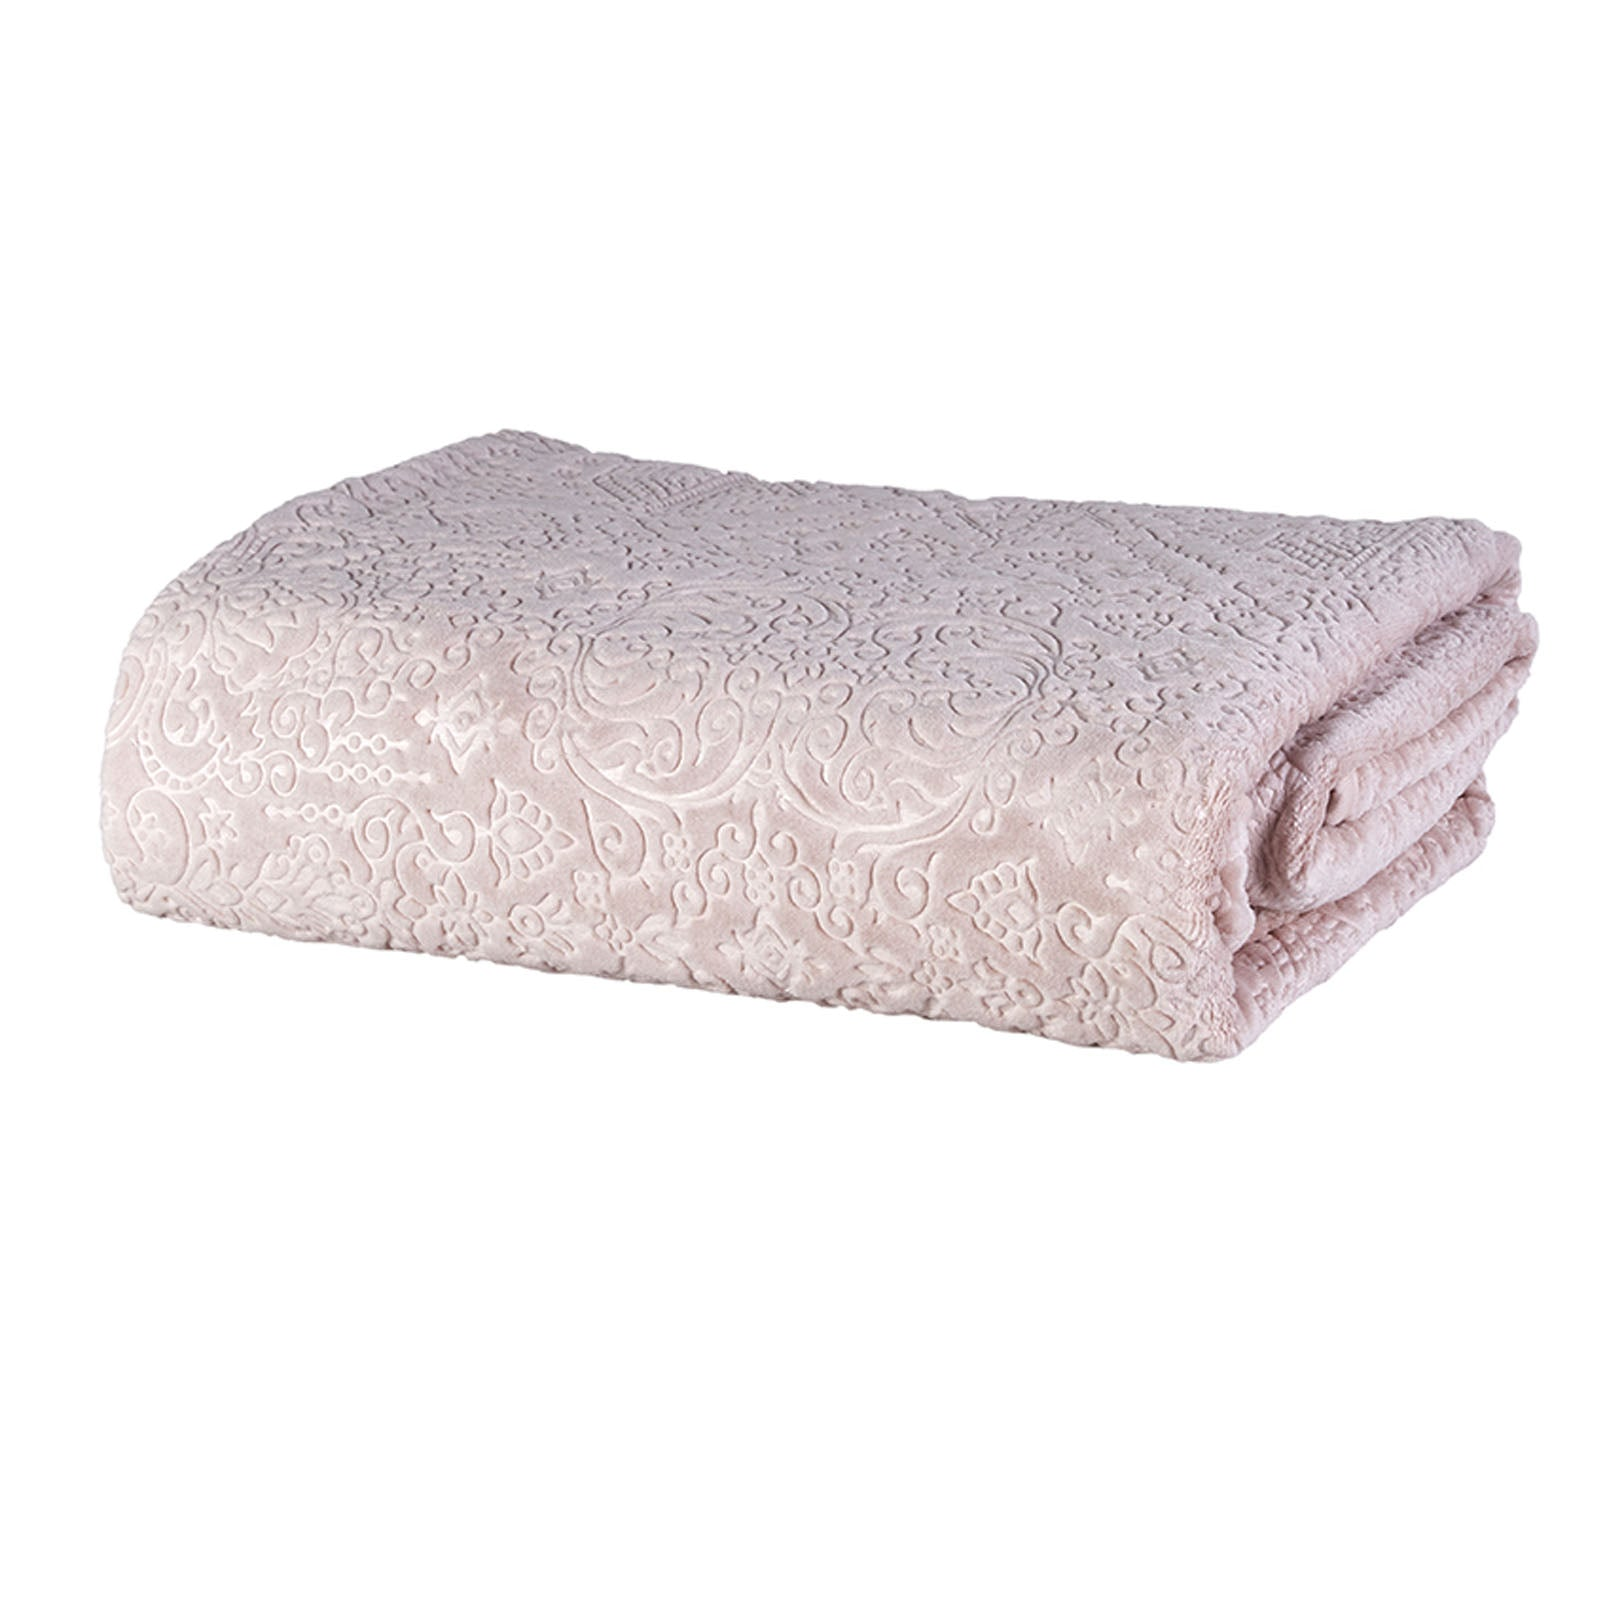 RAUQEL PUDRA  Throw Blanket 200.15.01.0122